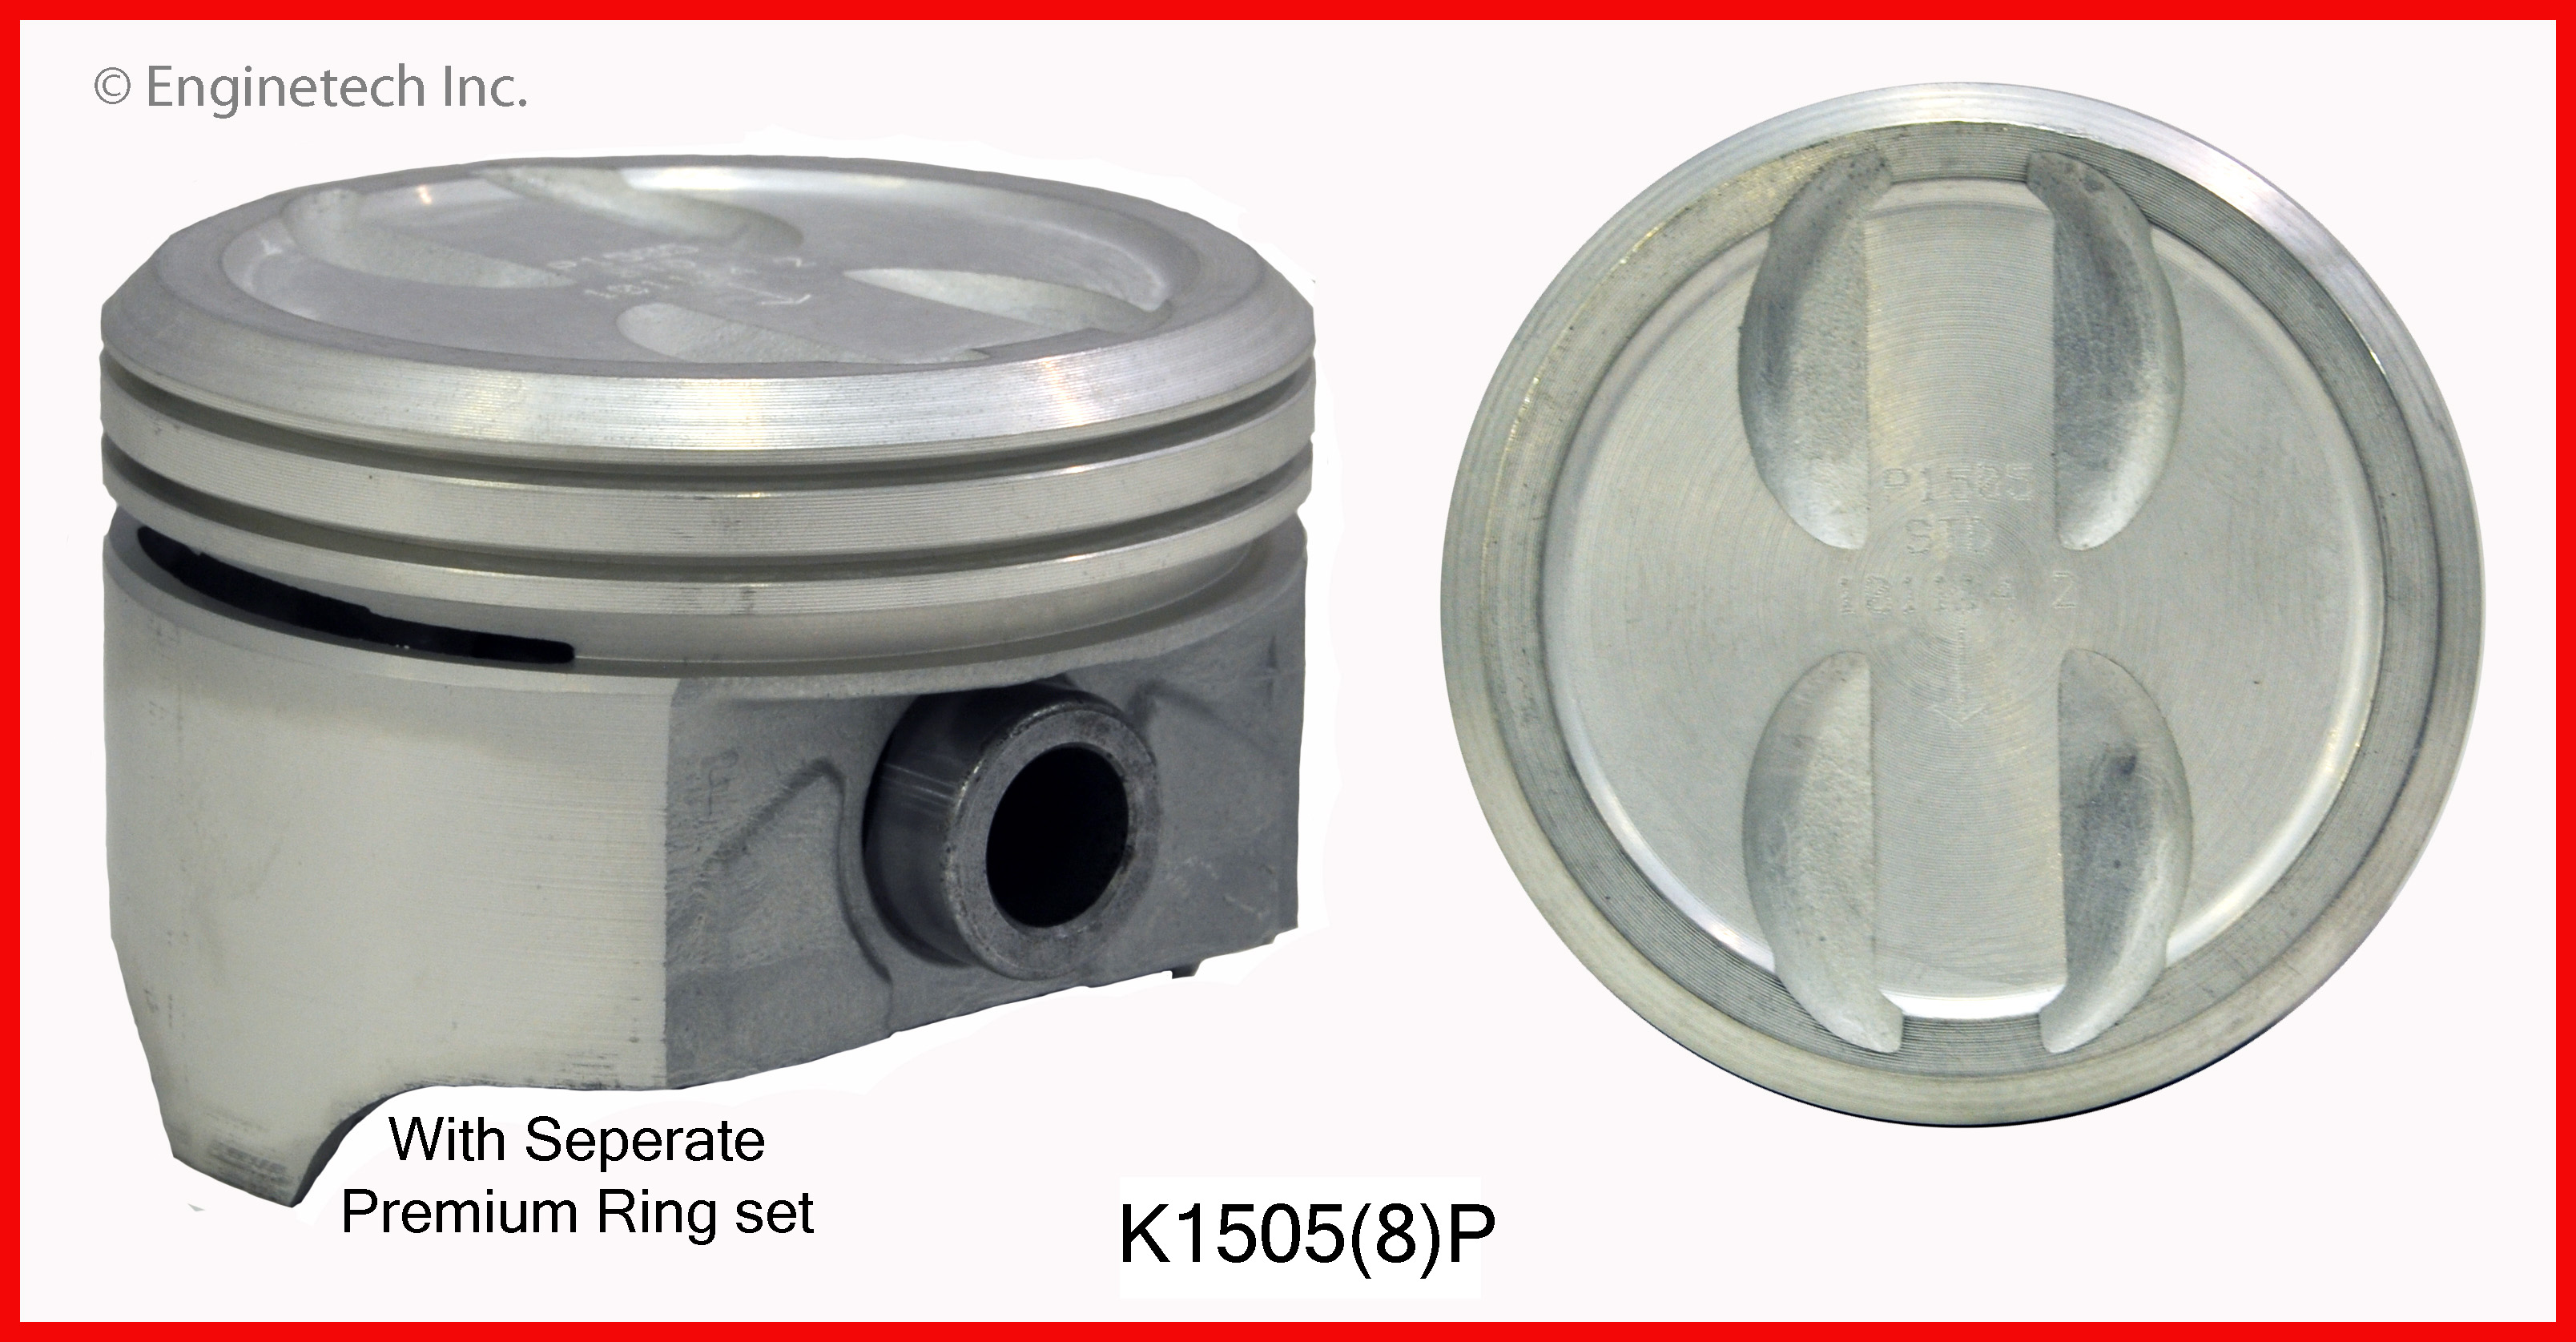 K1505(8)P Piston And Ring Kit Enginetech